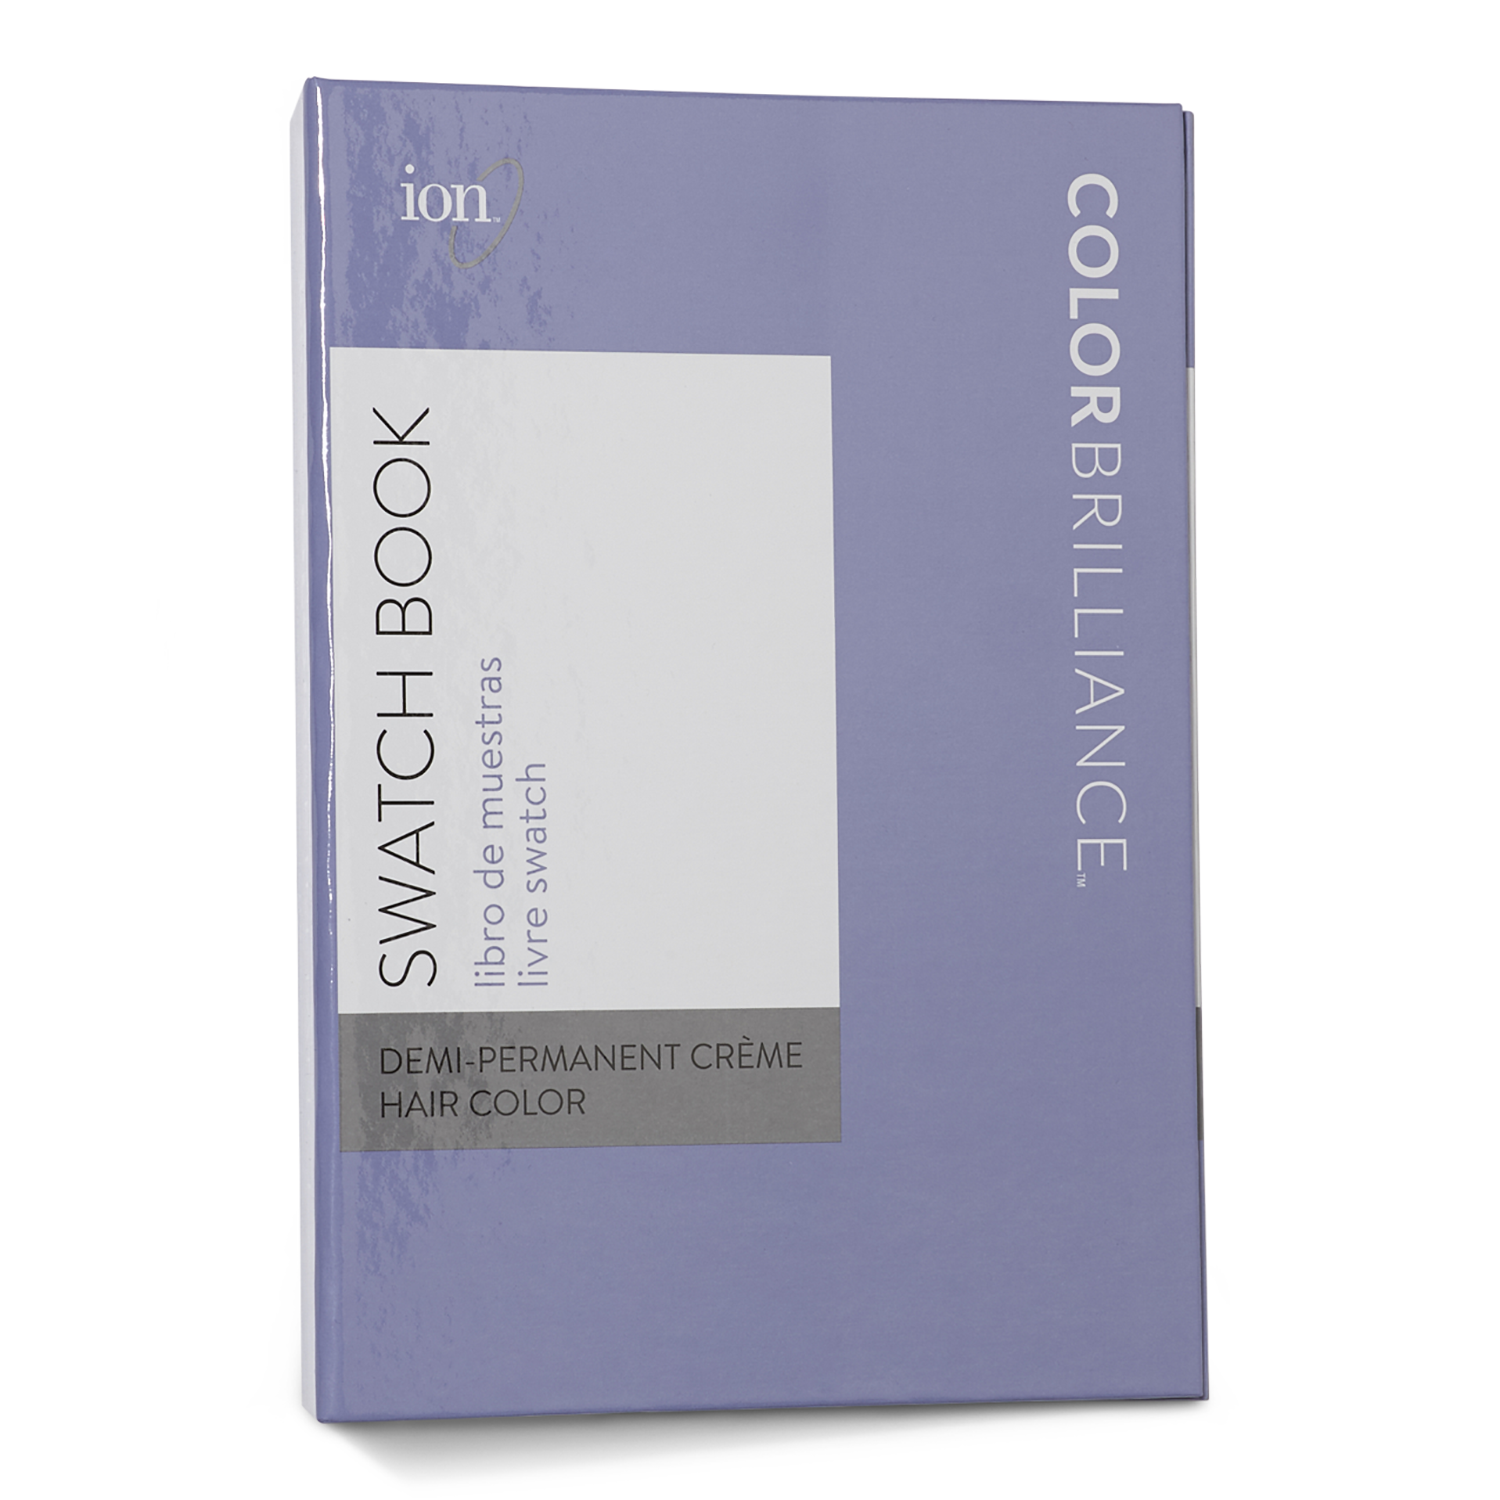 Ion Color Brilliance Demi Permanent Hair Color Swatch Book Hair